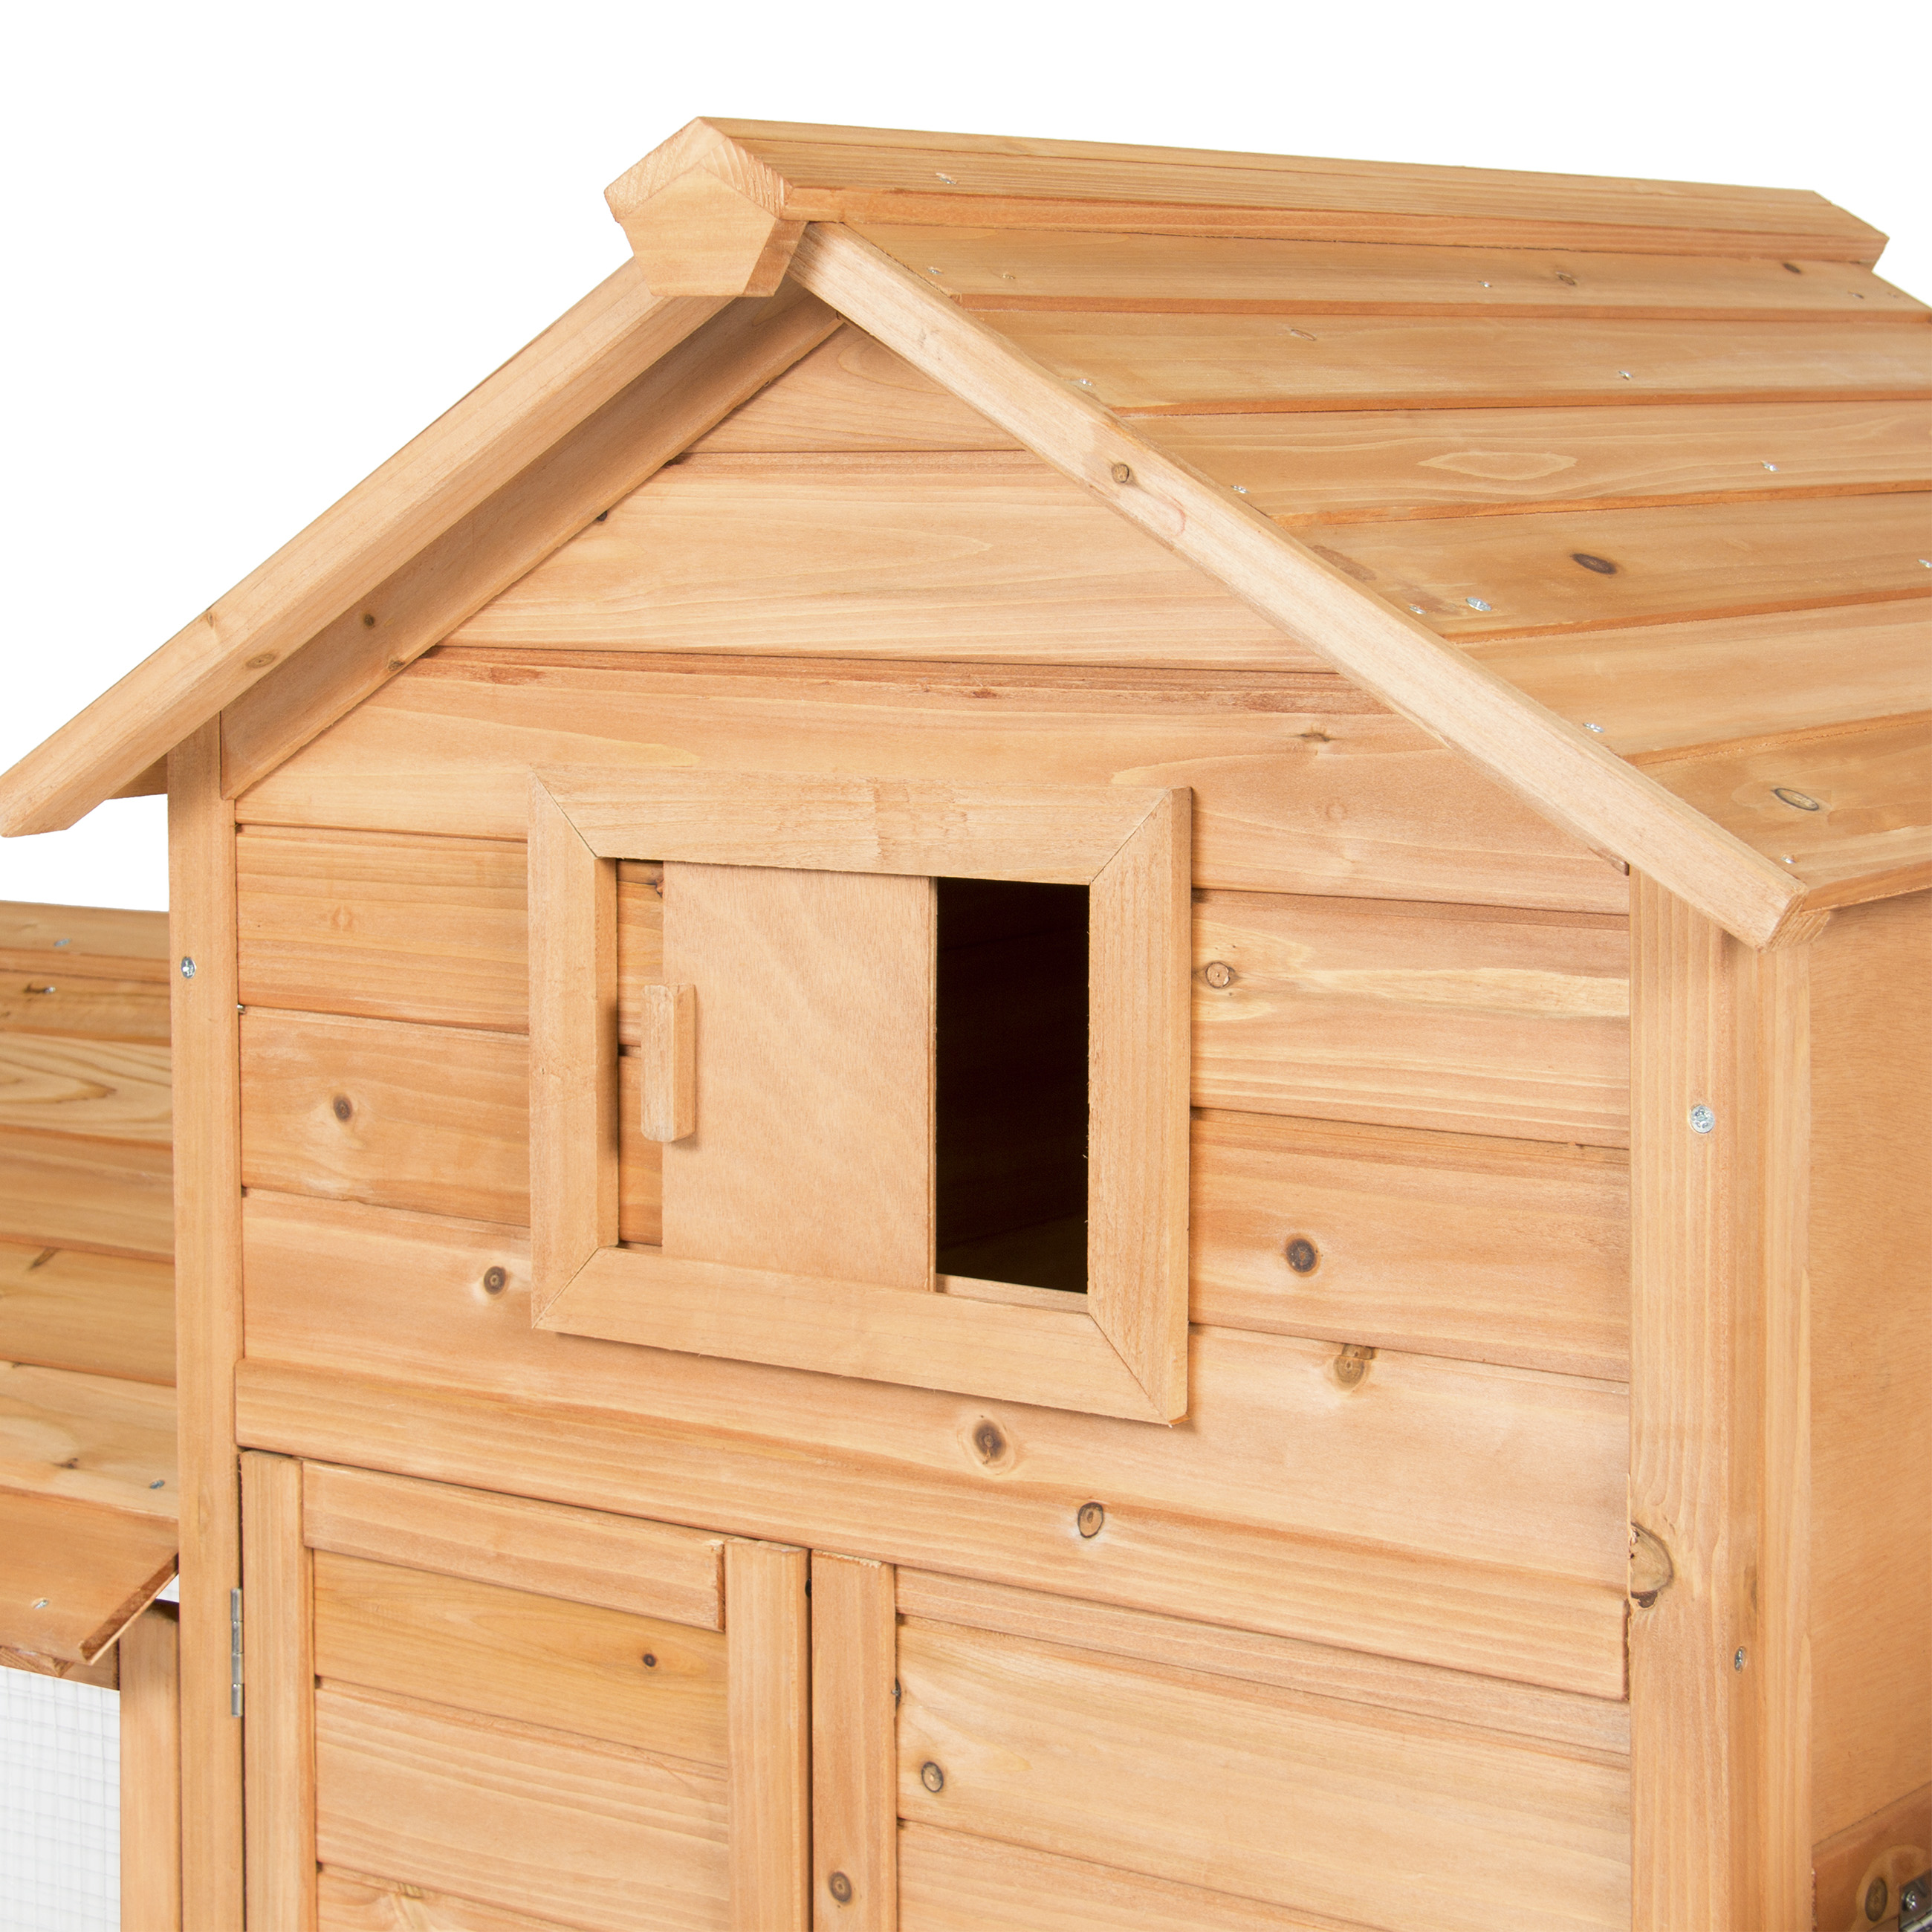 Home product 12 bird chicken coop - Bcp 80 Wooden Chicken Coop Backyard Nest Box Wood Hen House Poultry Cage Hutch Walmart Com